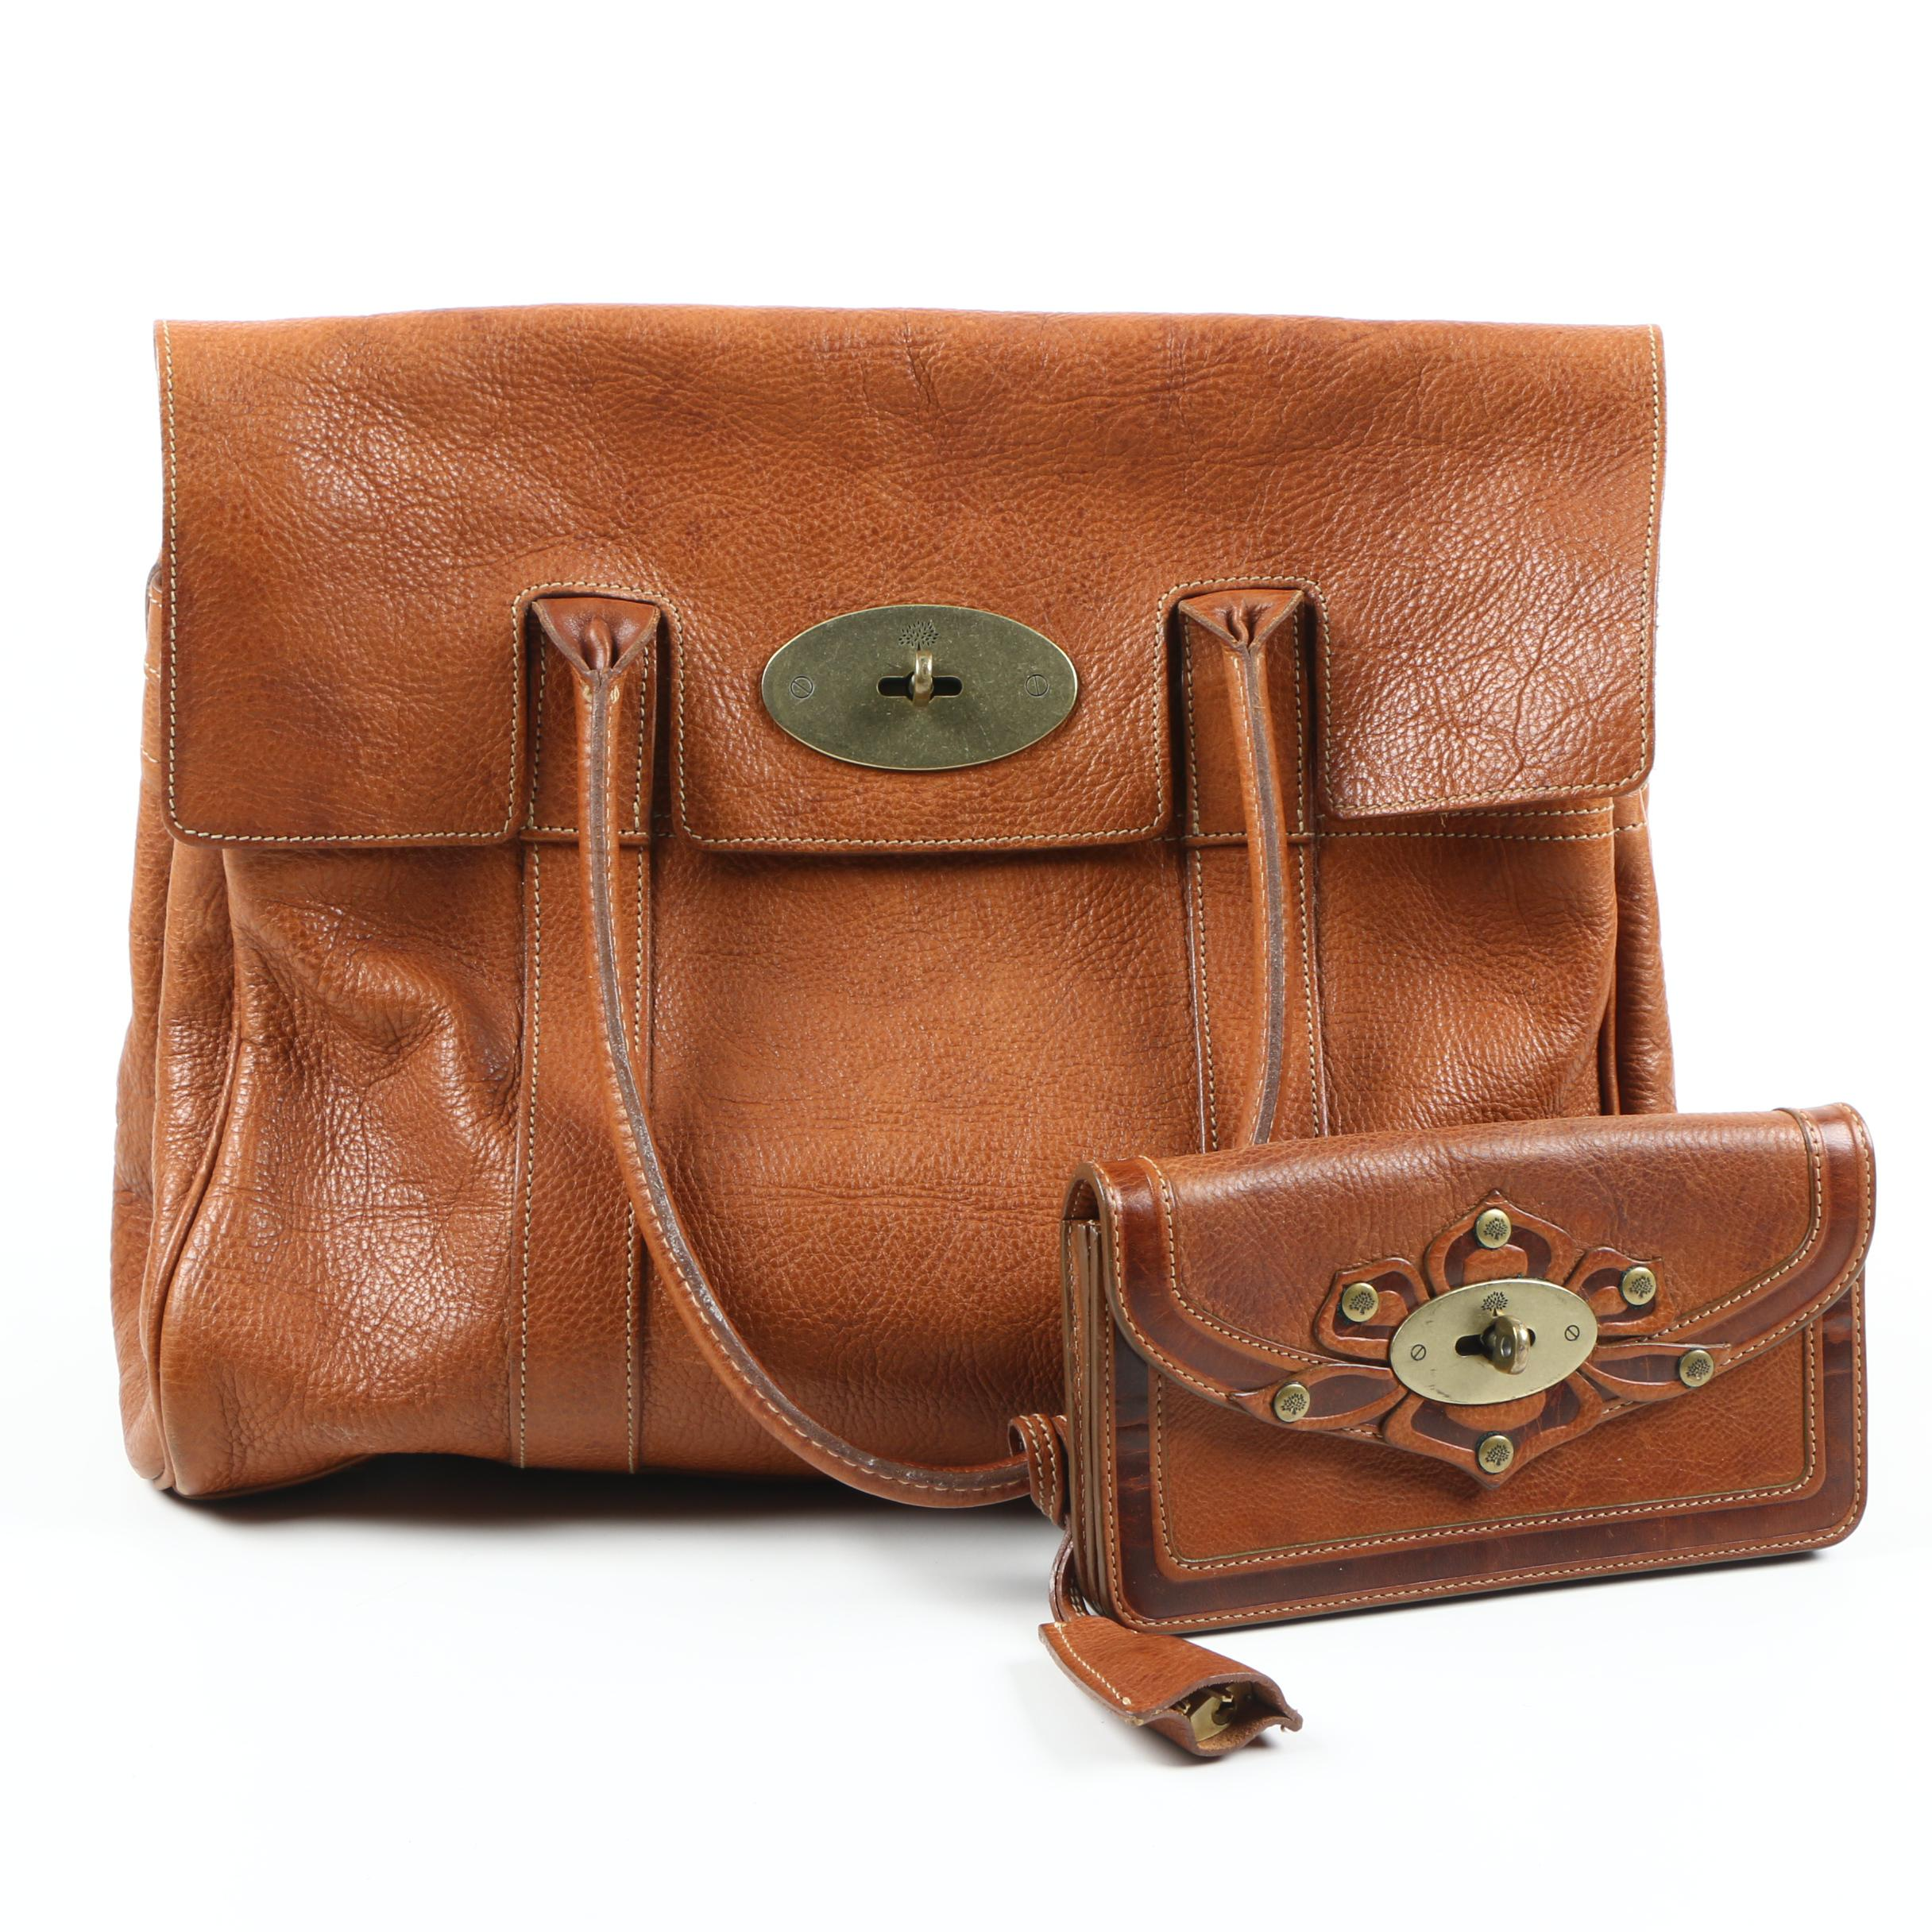 b64f8e65dd ... handbag 2017 075d8 45422  shopping mulberry leather tote and wallet  1f8be 822bc